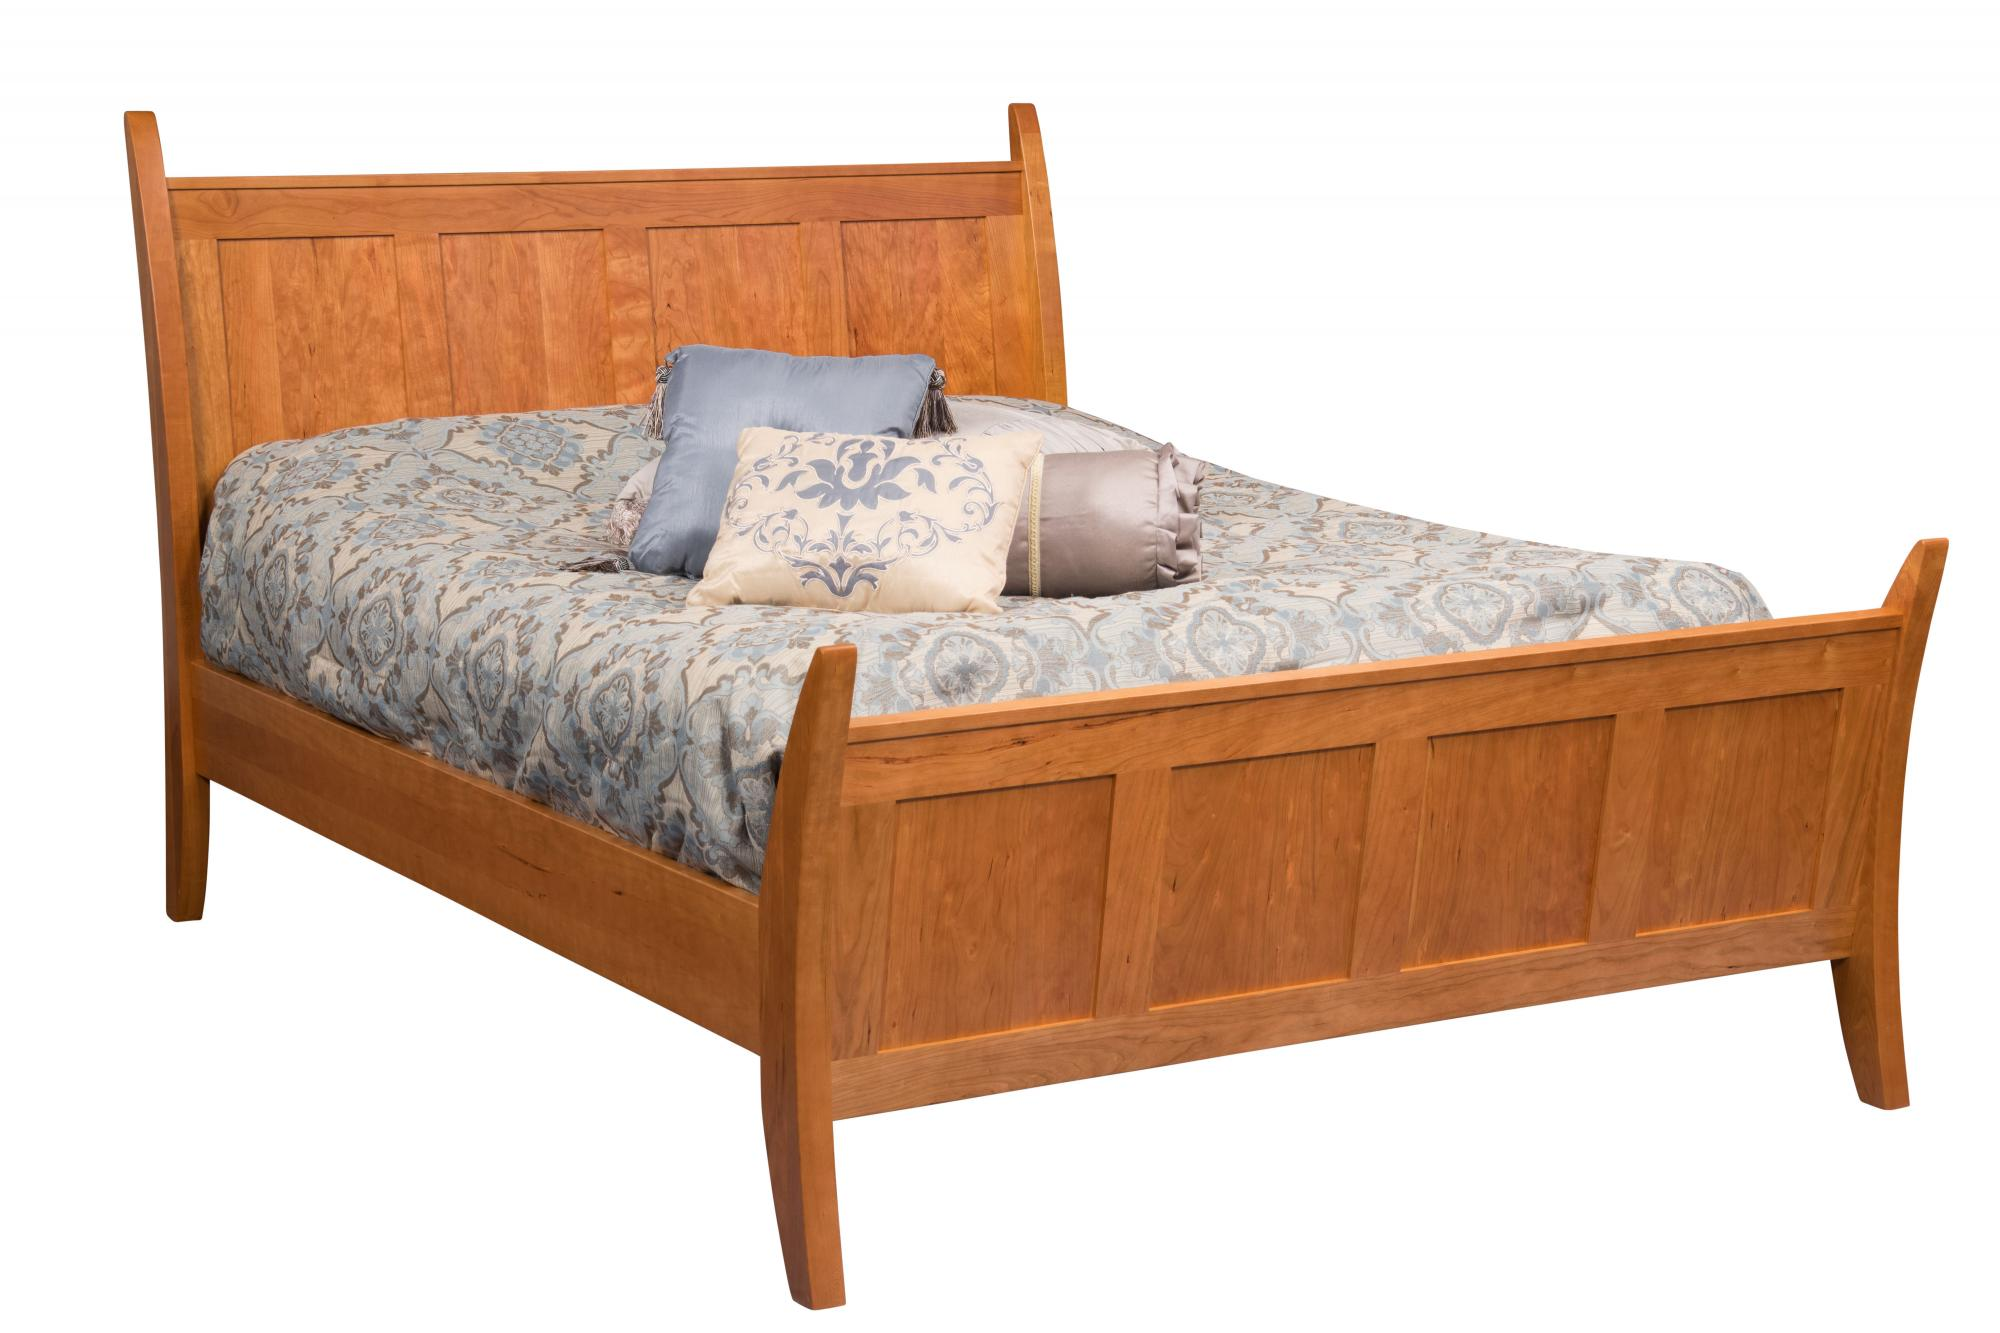 Nantucket Bed Amish Furniture Store Mankato Mn